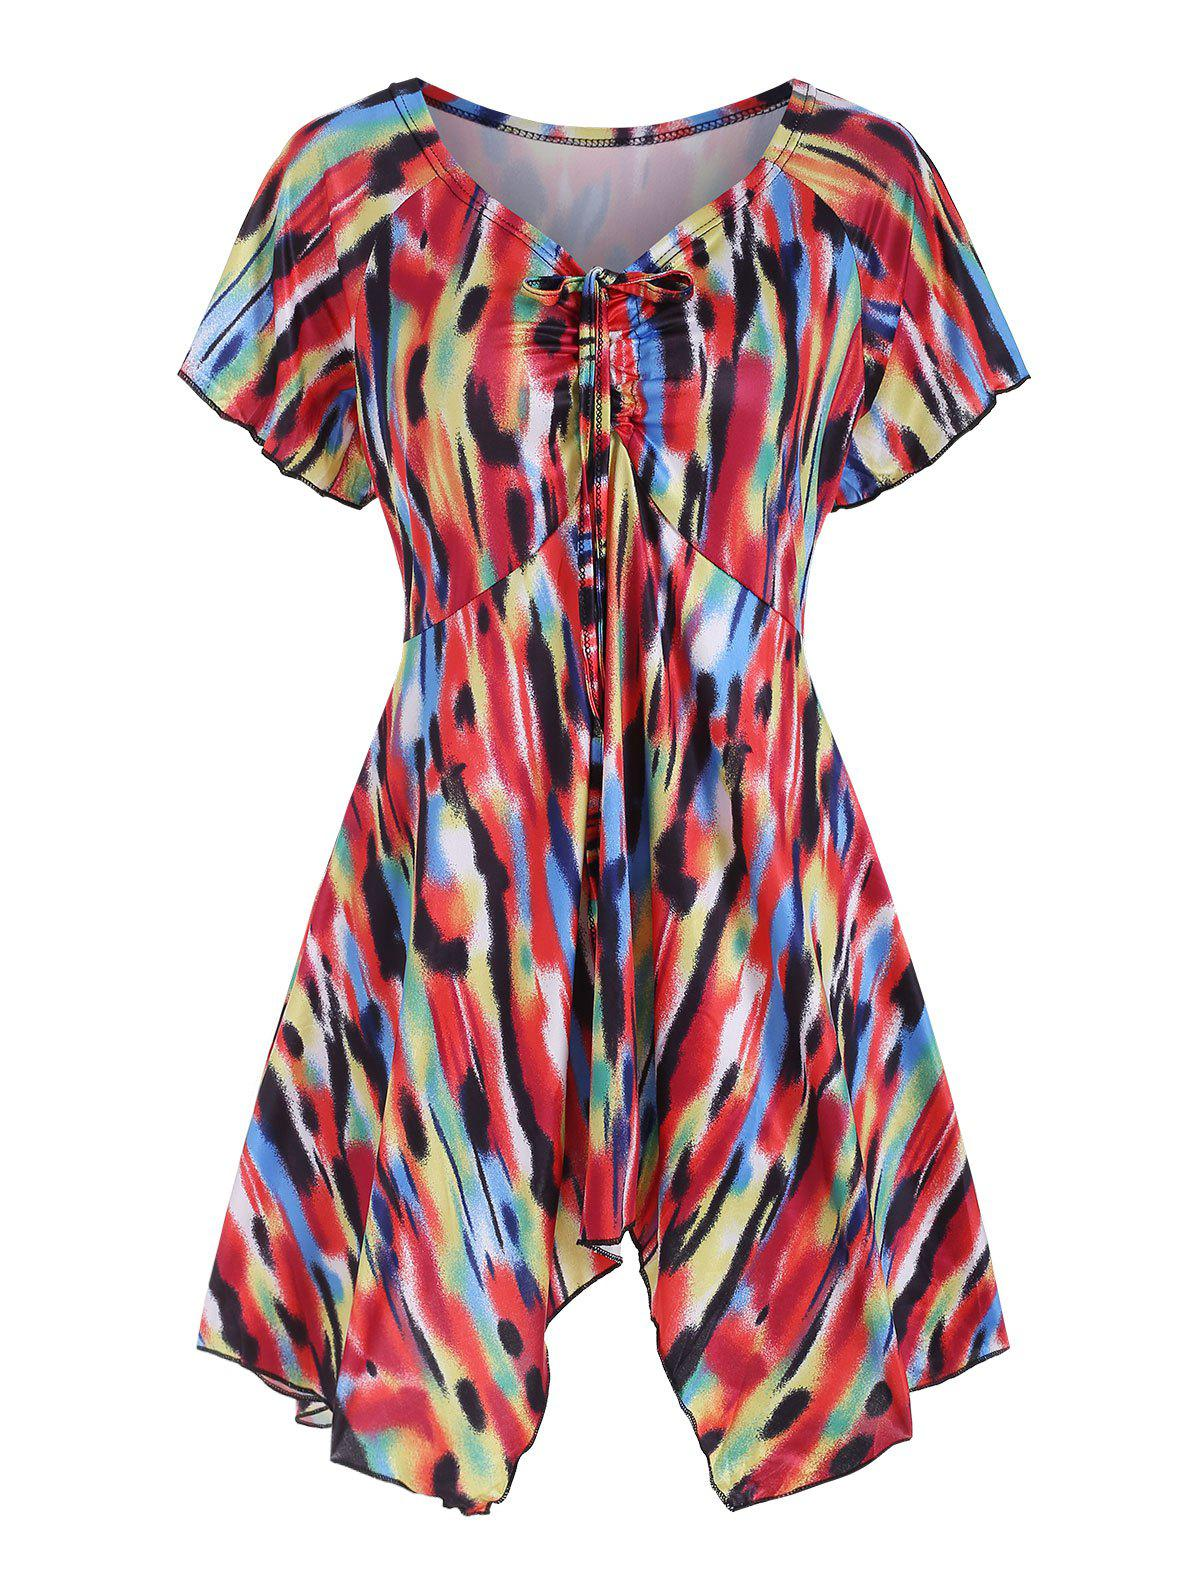 Cinched Printed Asymmetric Tee - multicolor A 2XL